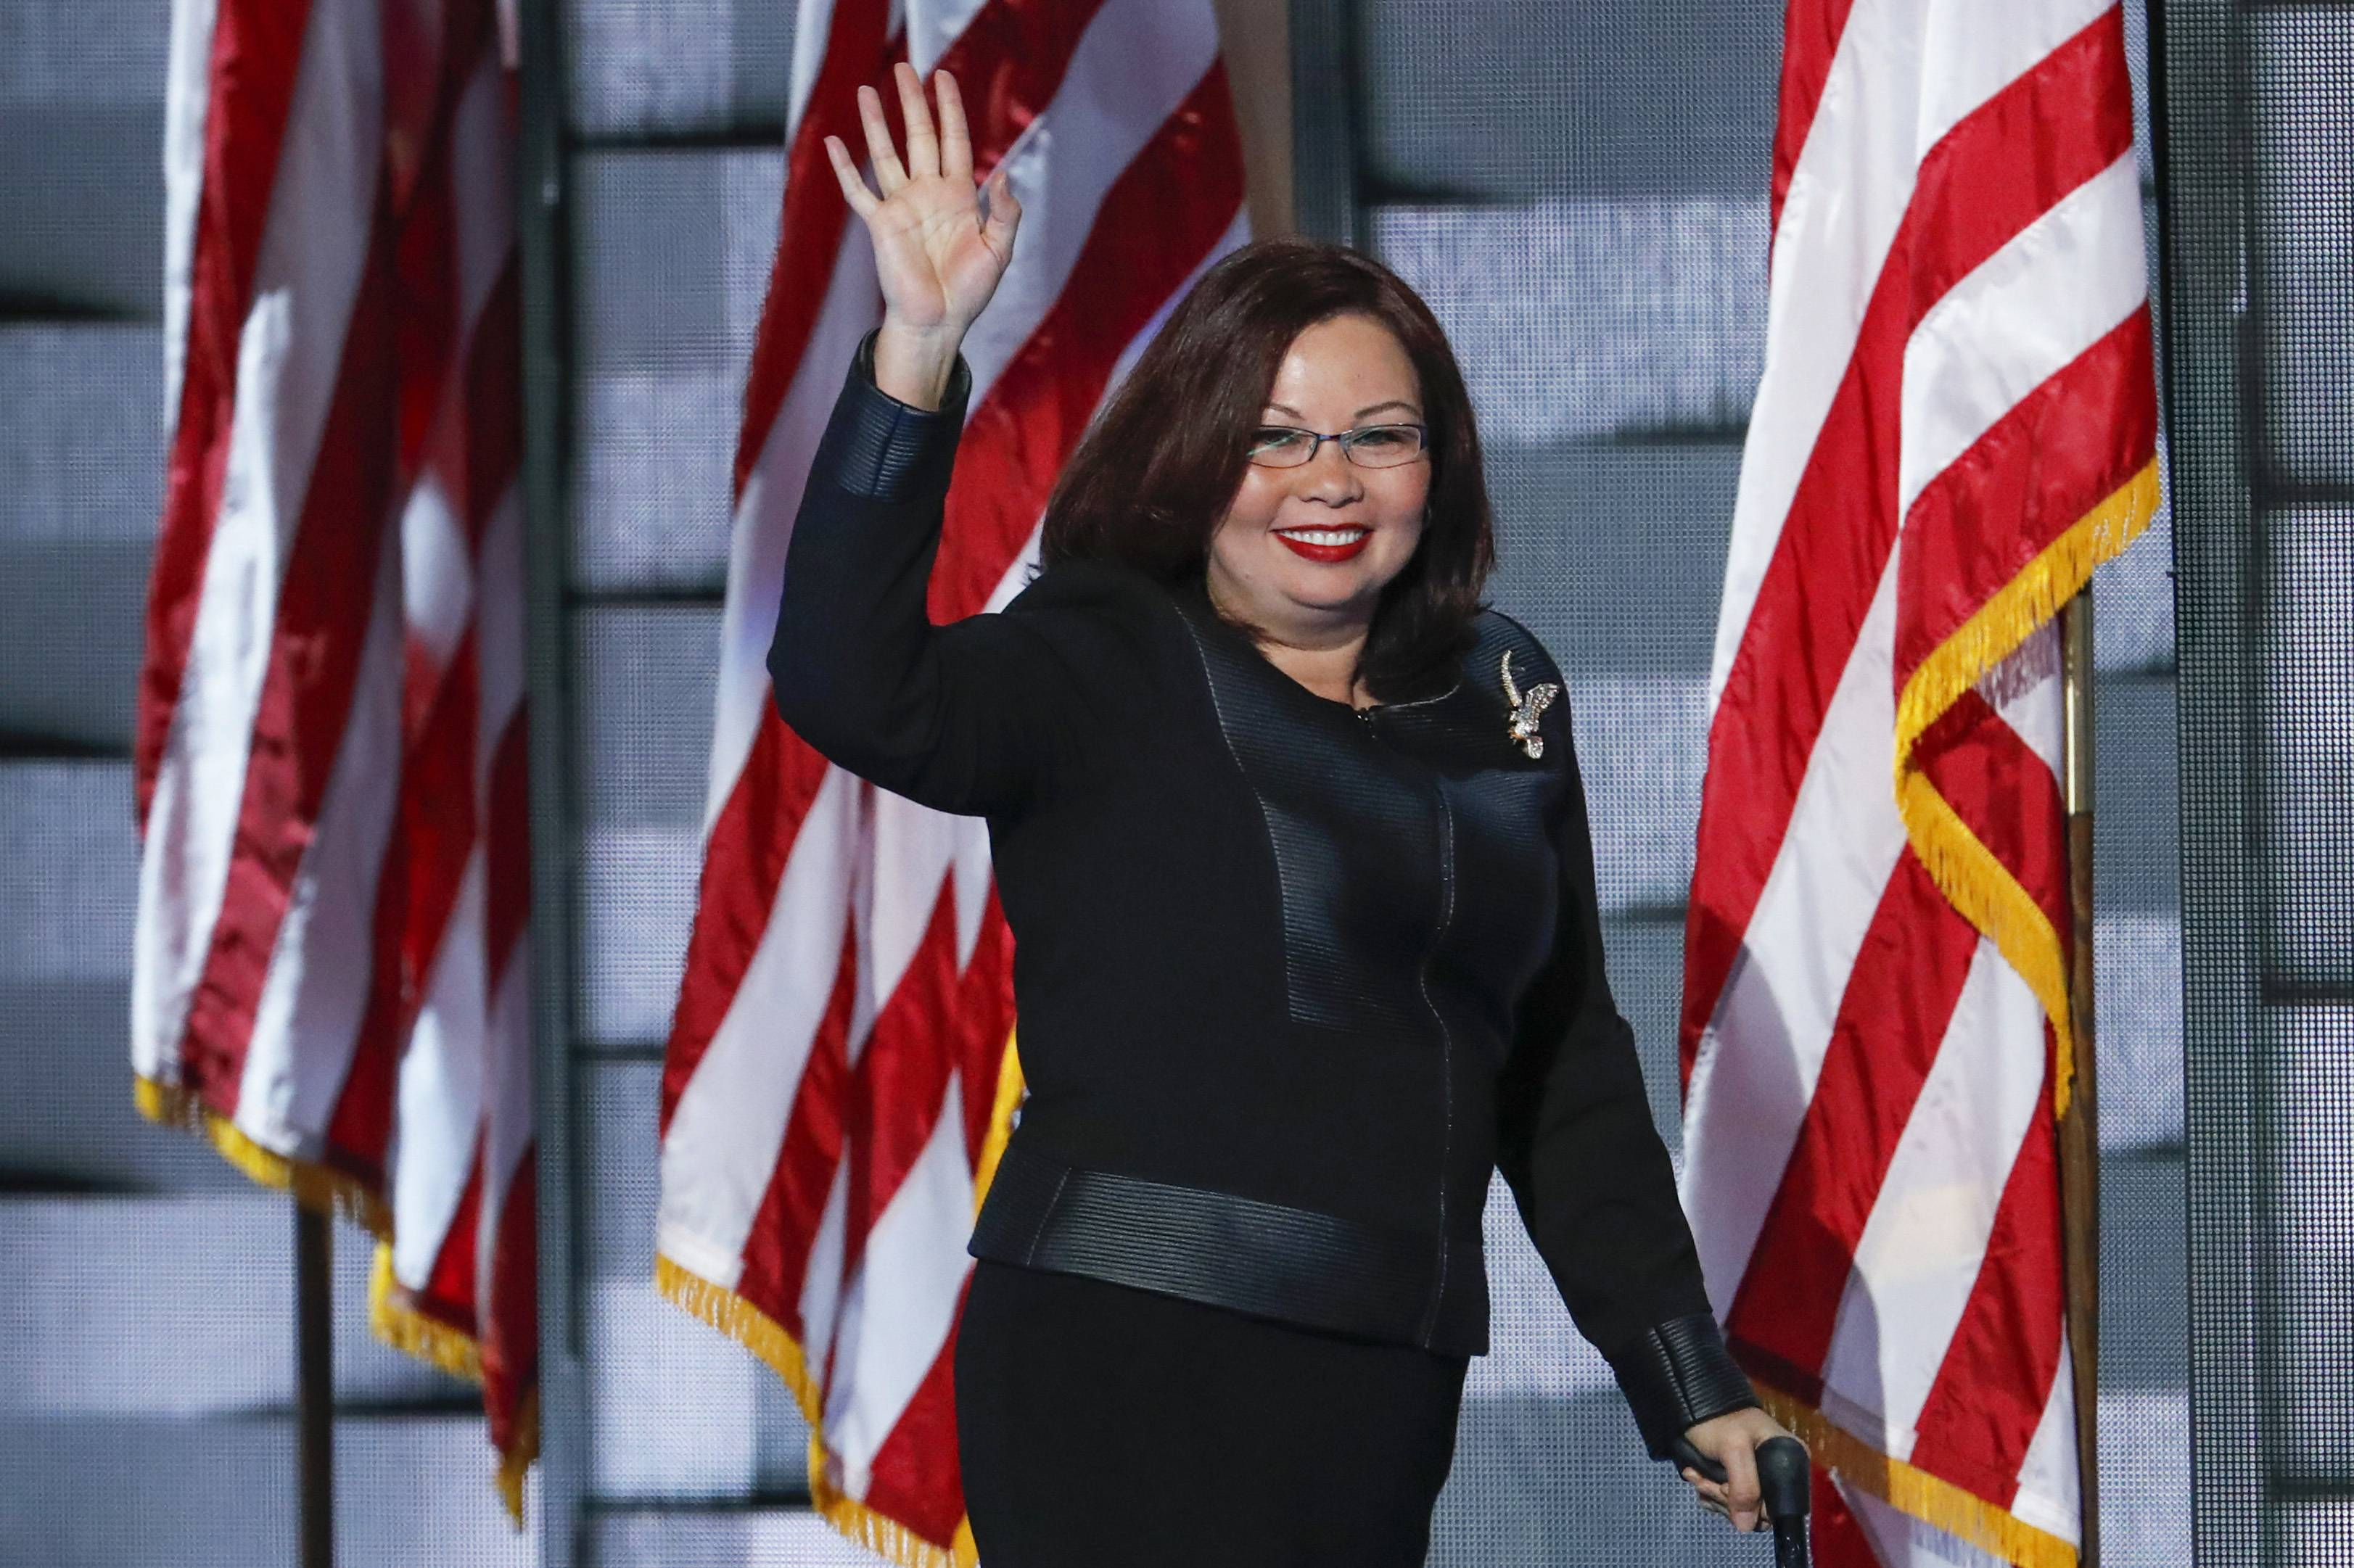 U.S. Rep. Tammy Duckworth spoke to the Democratic National Convention Thursday.